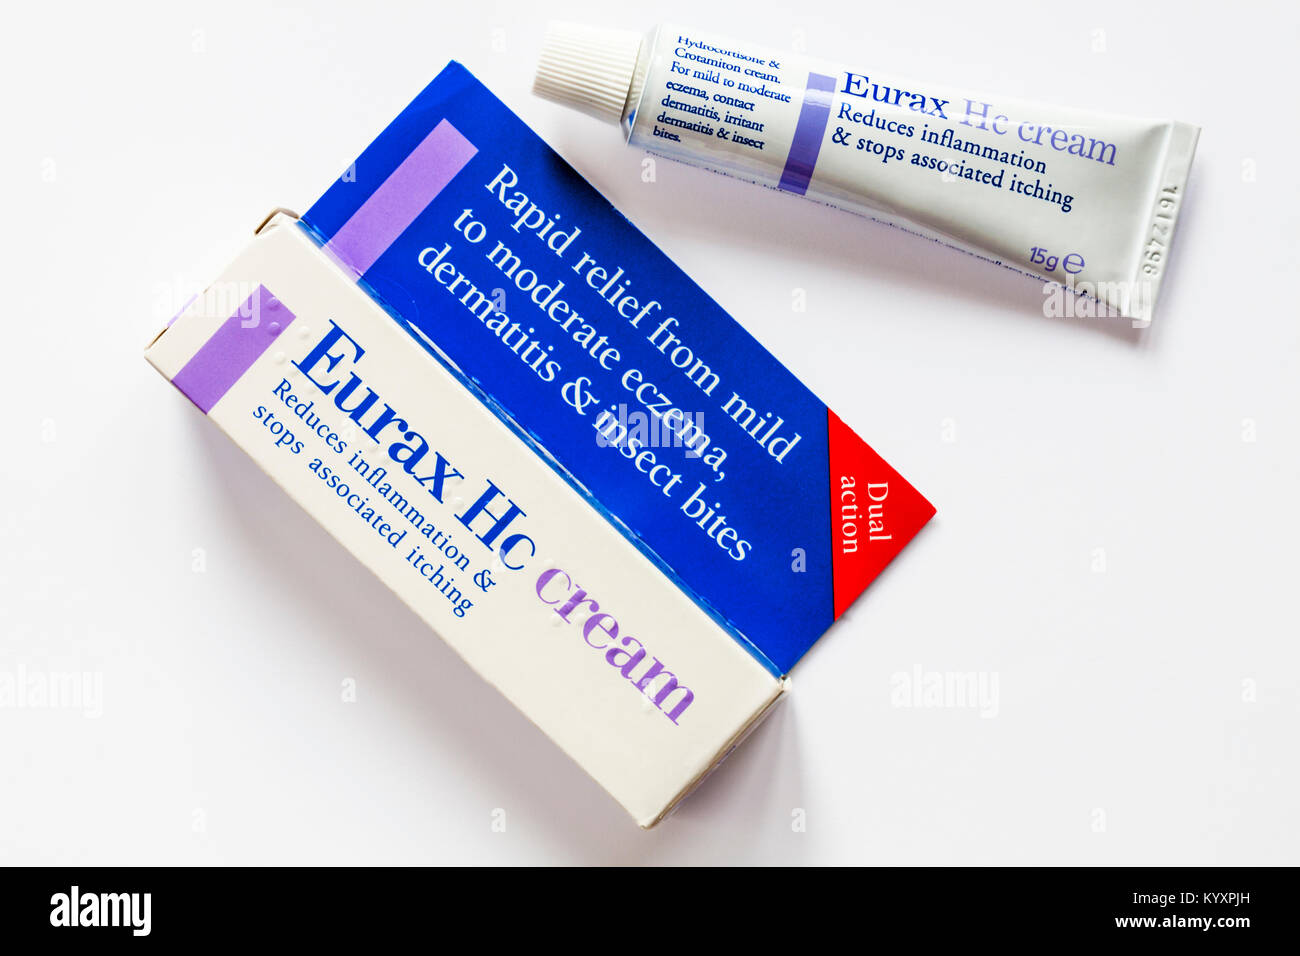 Eurax Hc cream reduces inflammation & stops associated itching - tube removed from isolated on white background - Stock Image